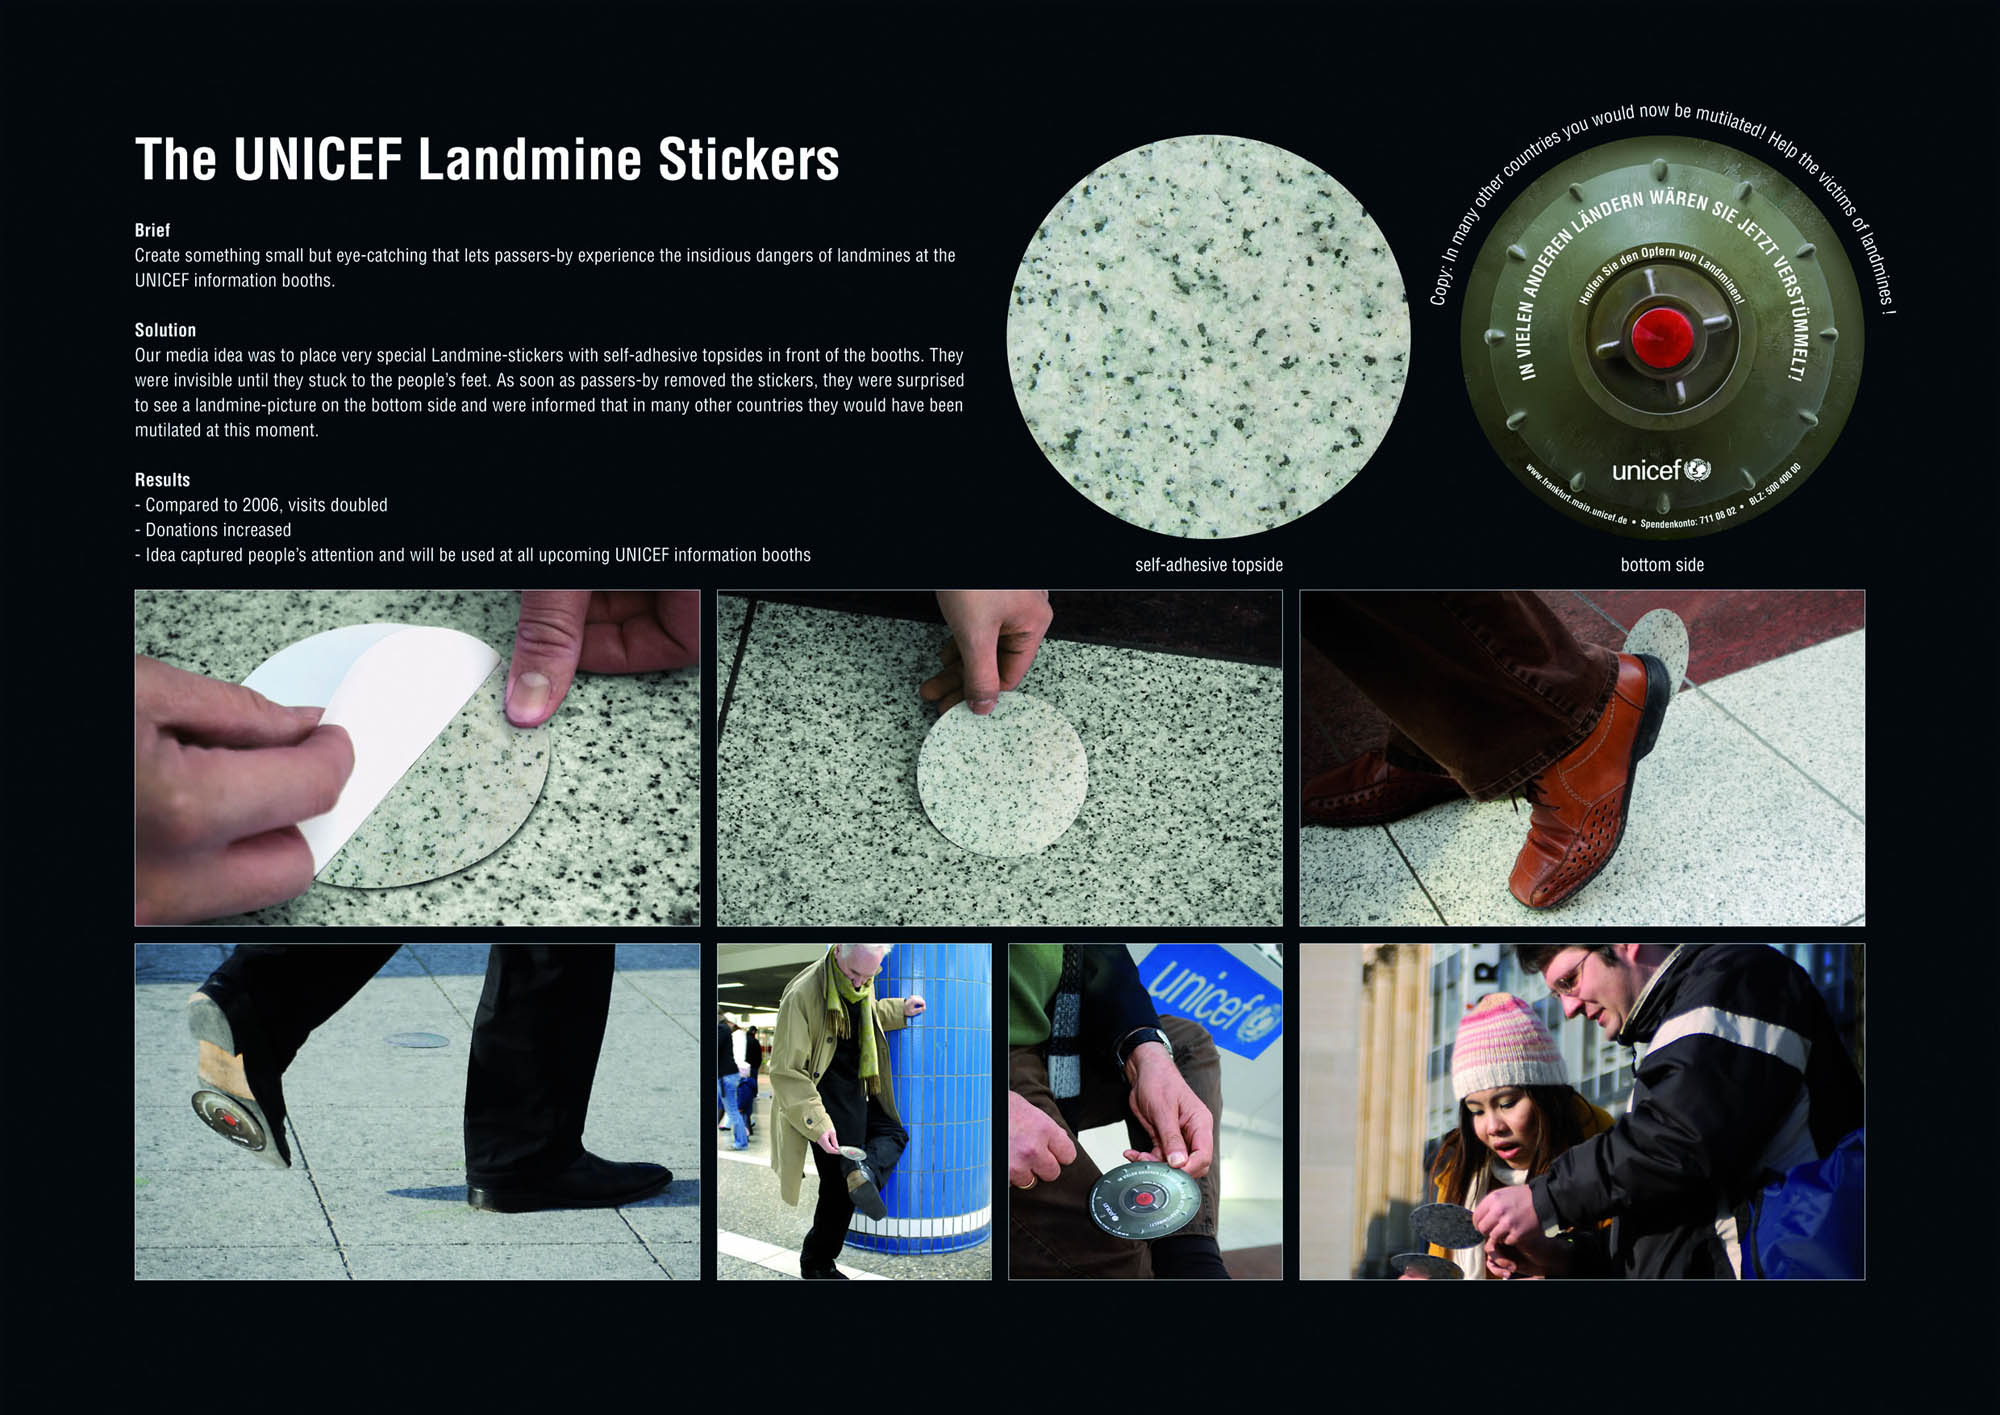 http://www.ibelieveinadv.com/commons/UNICEF_The_UNICEF_Landmine_Stickers.jpg